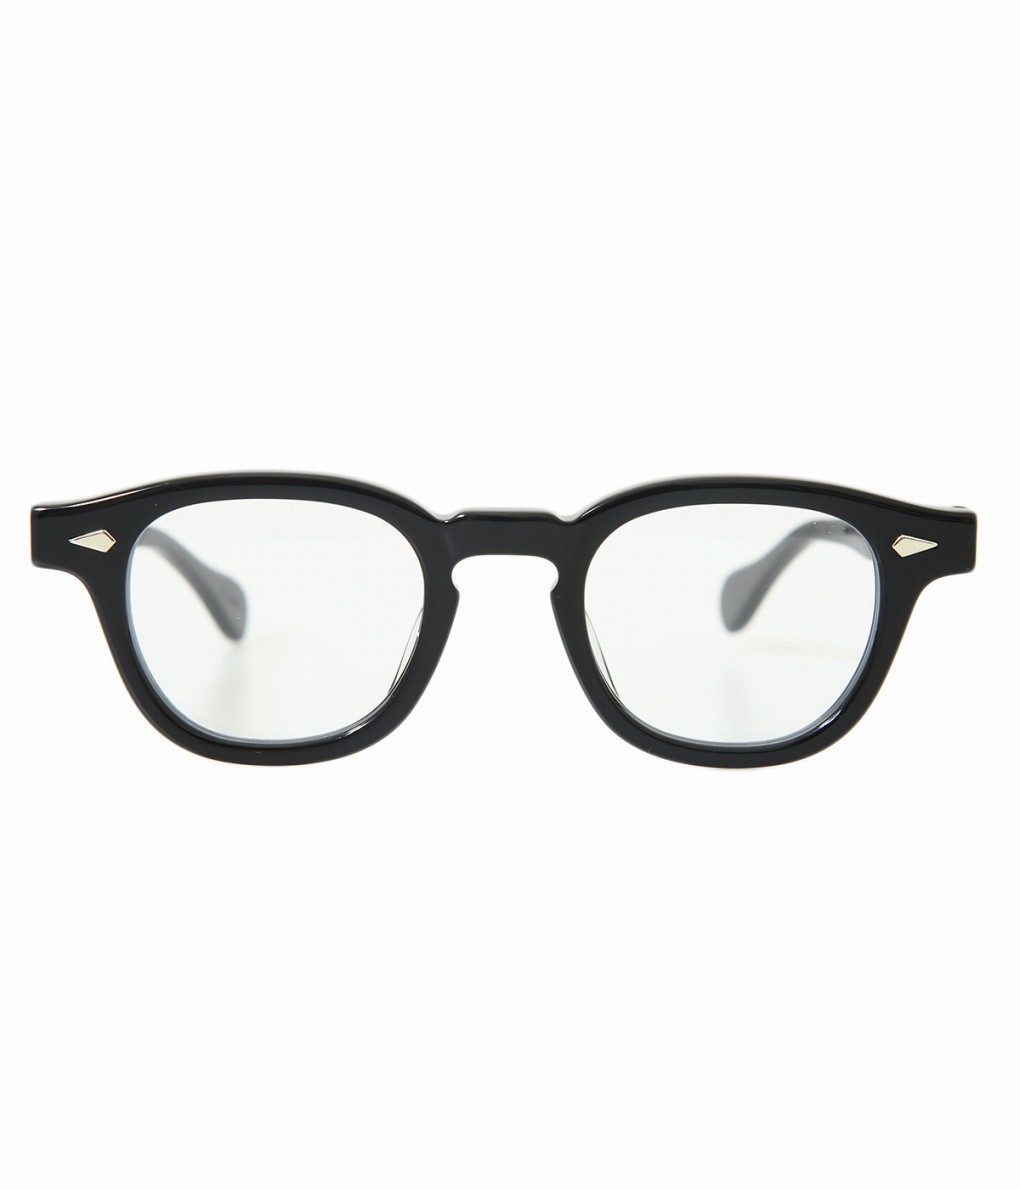 眼鏡・サングラス, 眼鏡 JULIUS TART OPTICAL AR 42(size) 44(size) 46(size) - BLACK CLEAR - JTPL-009A-1A-2AWISCOR